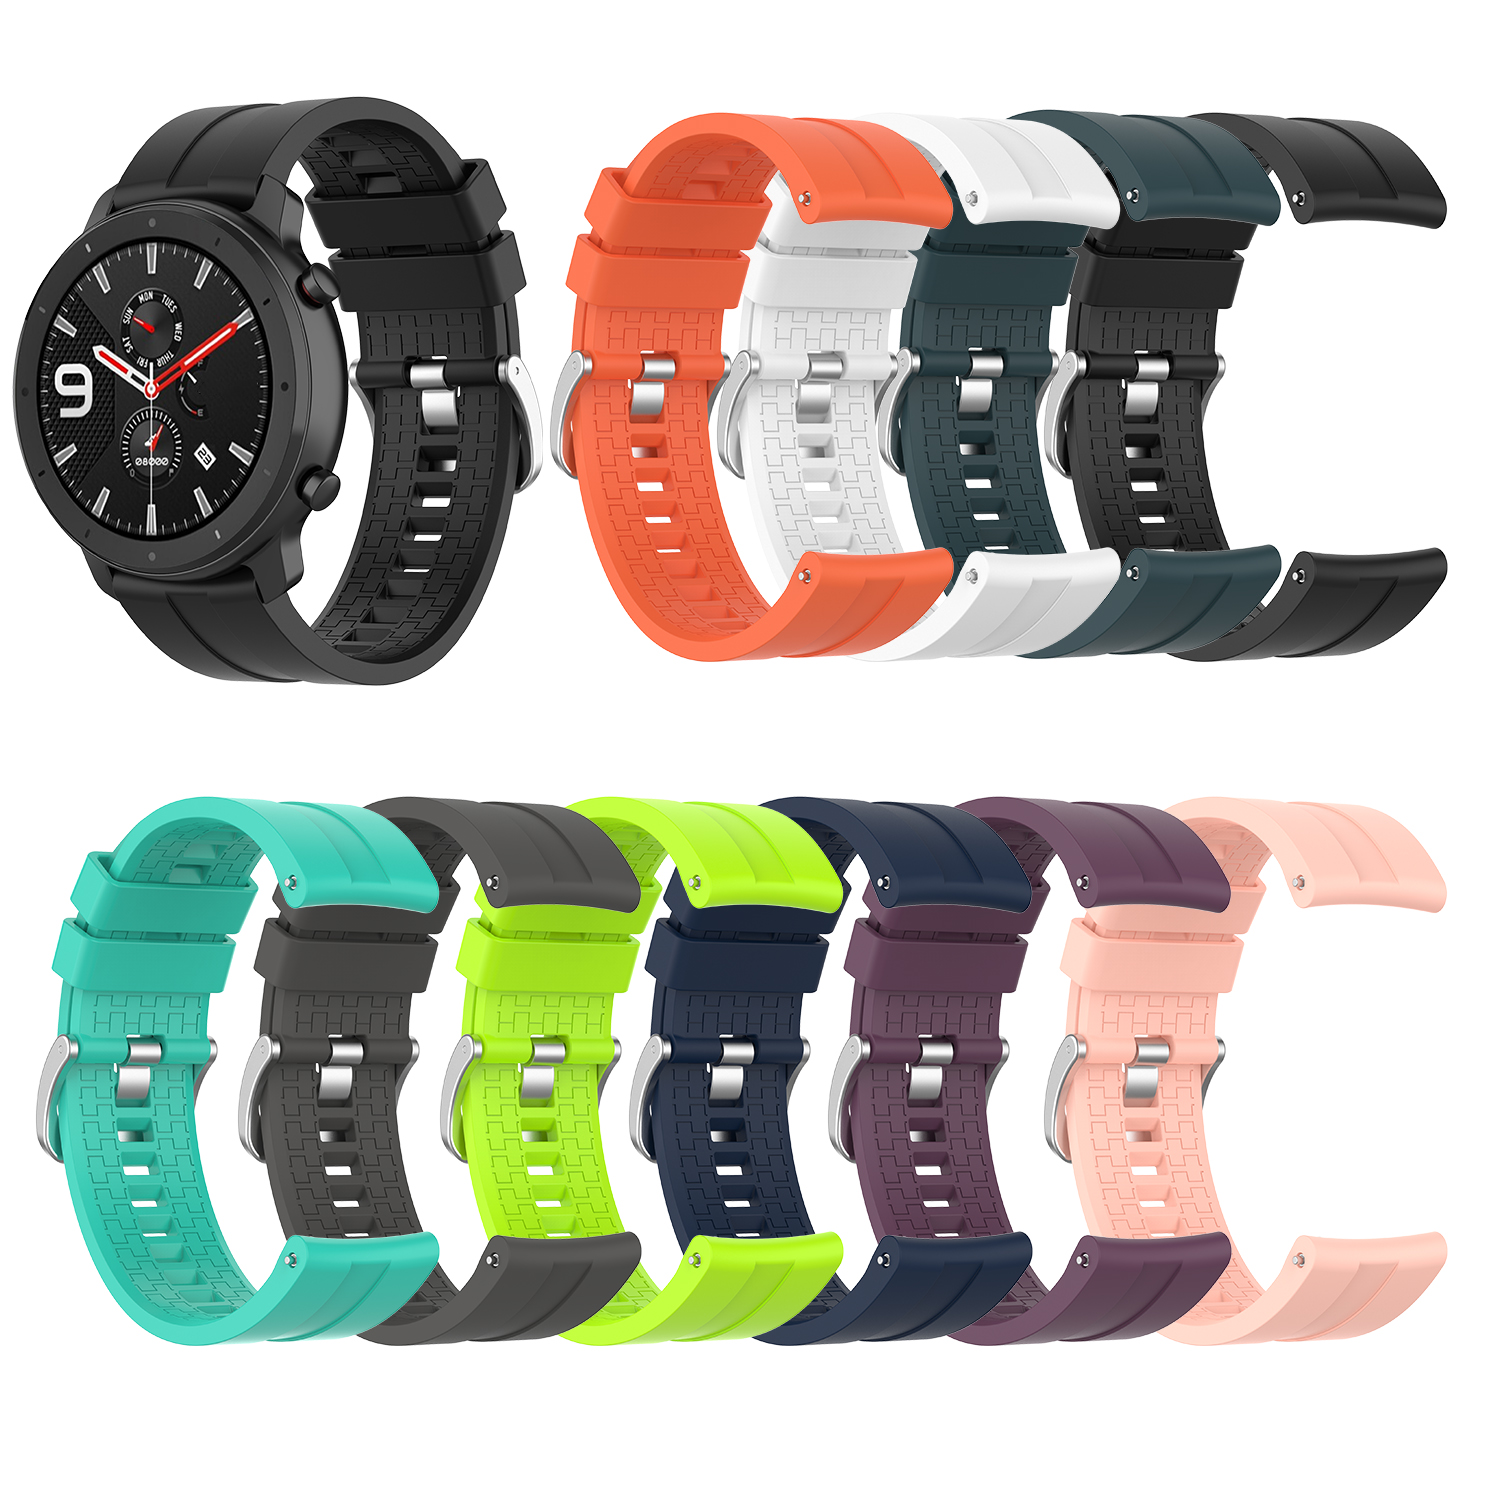 New For Huami Amazfit GTR 47mm For Samsung Strap Watch Steel Buckle Silicone Strap 22mm Width Smart Watch Wristband Accessories